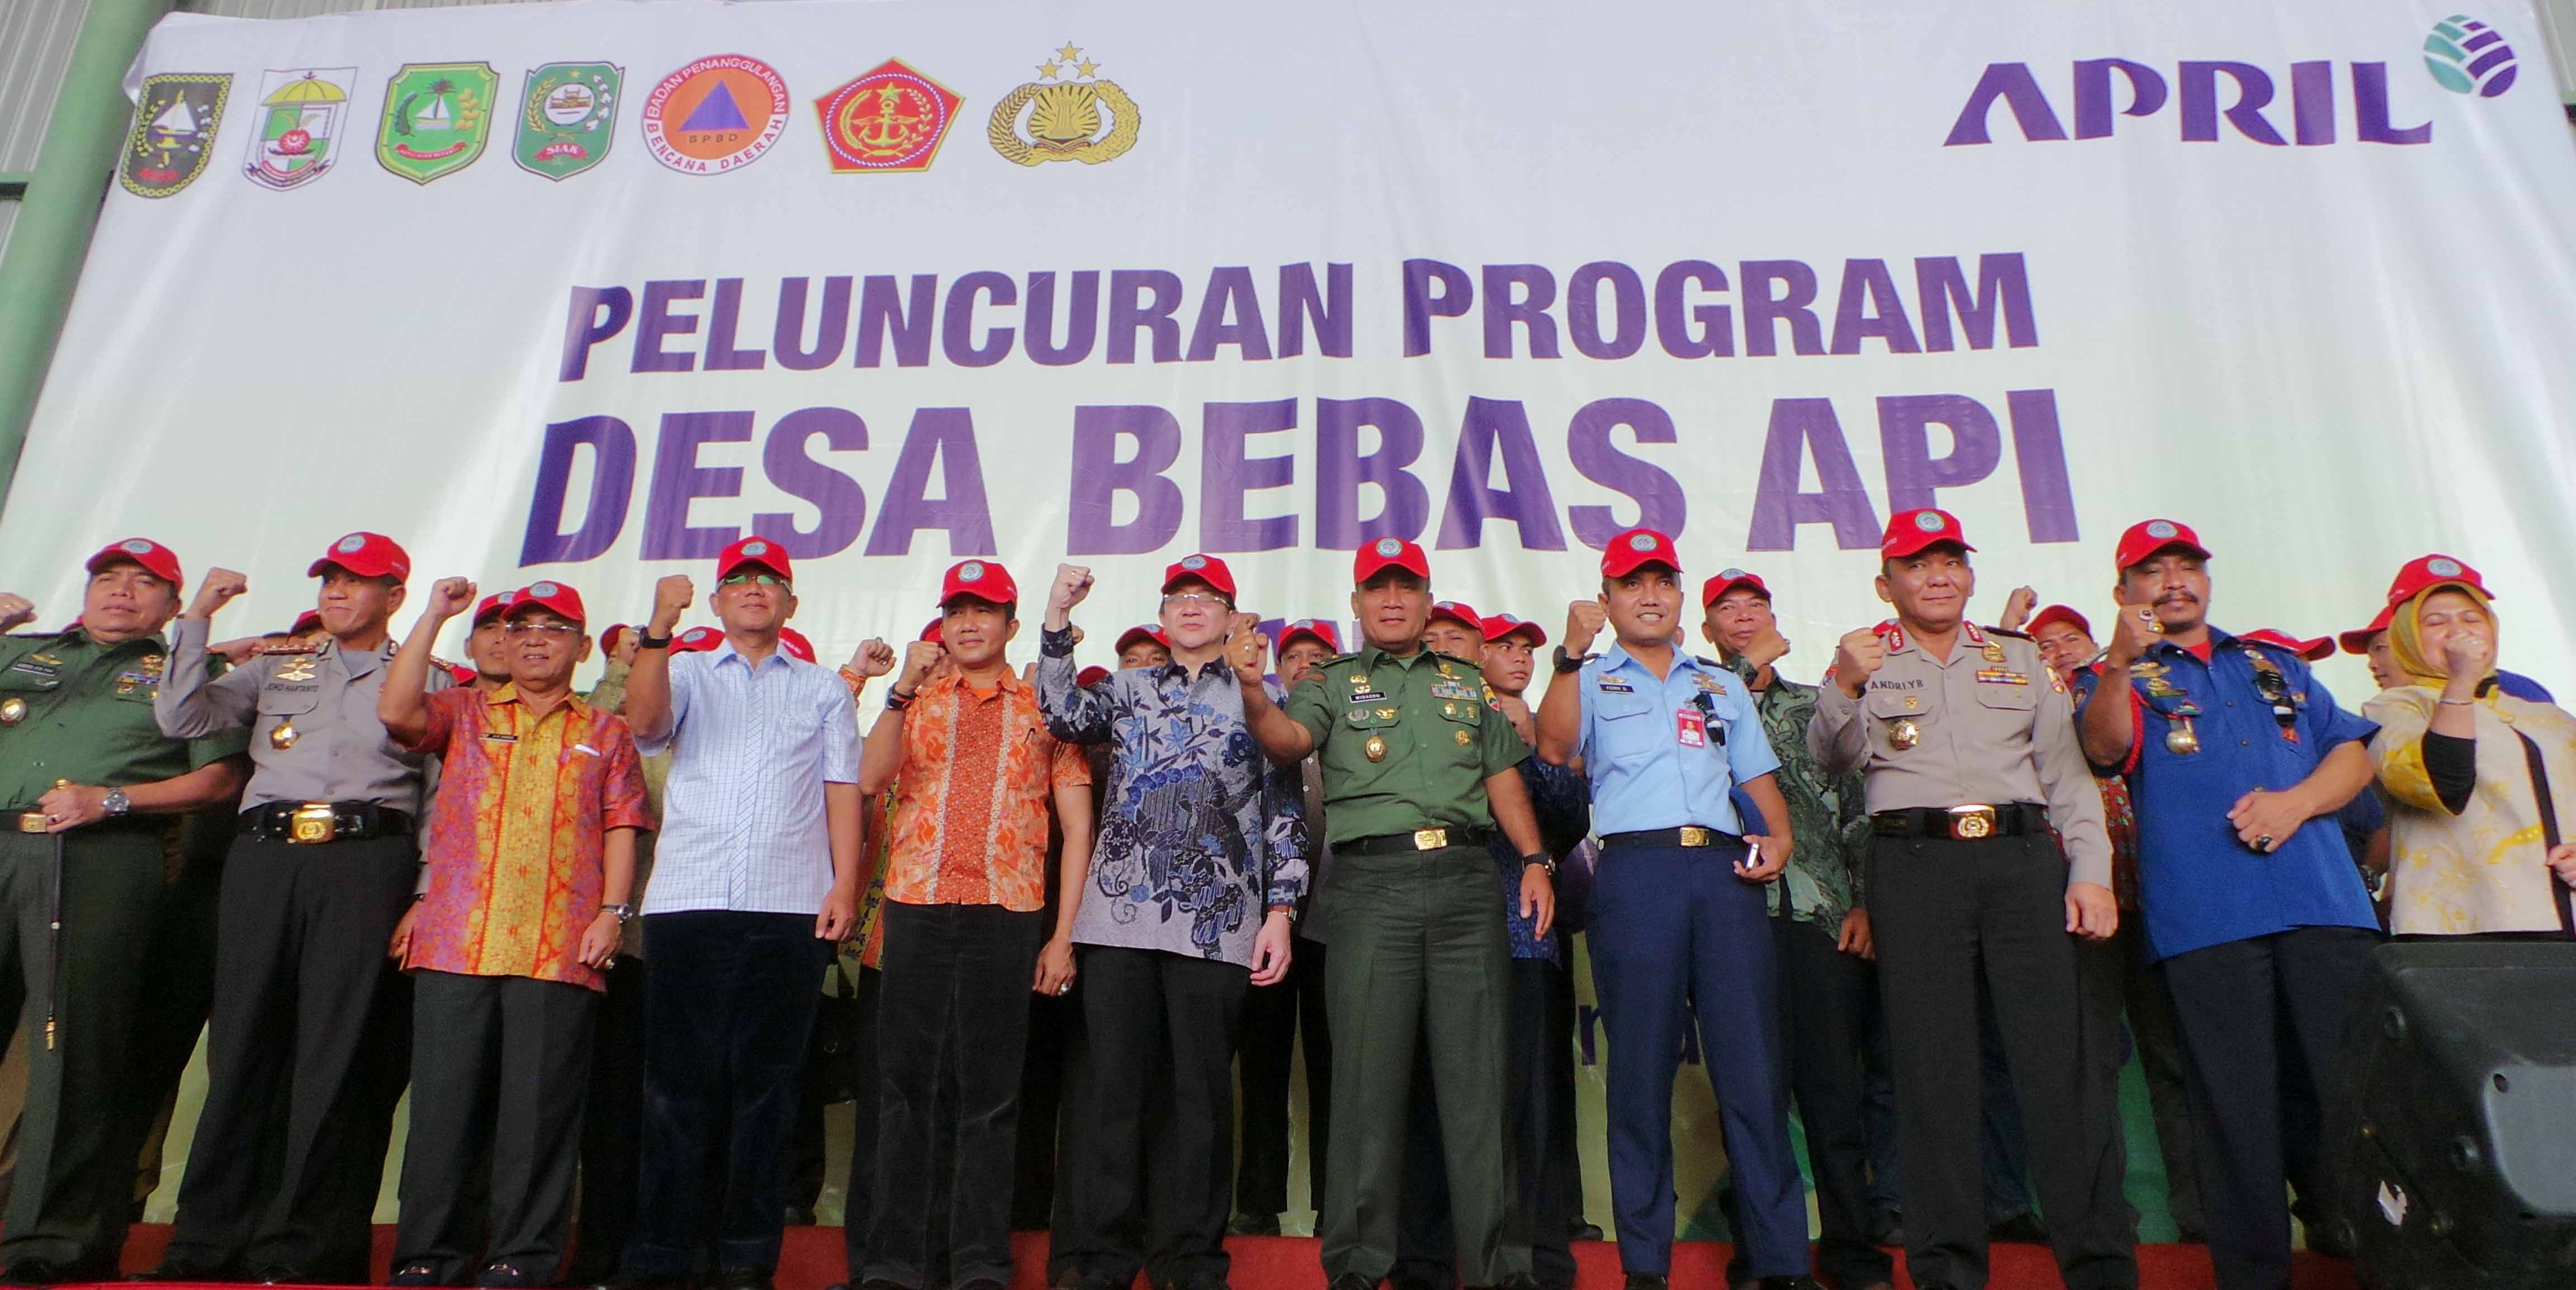 Fire Free Village Program (FFVP) 2016 Launch Event in Pangkalan Kerinci, Riau attended by participating village chiefs, civil society group representatives as well as Riau government and law enforcement officials